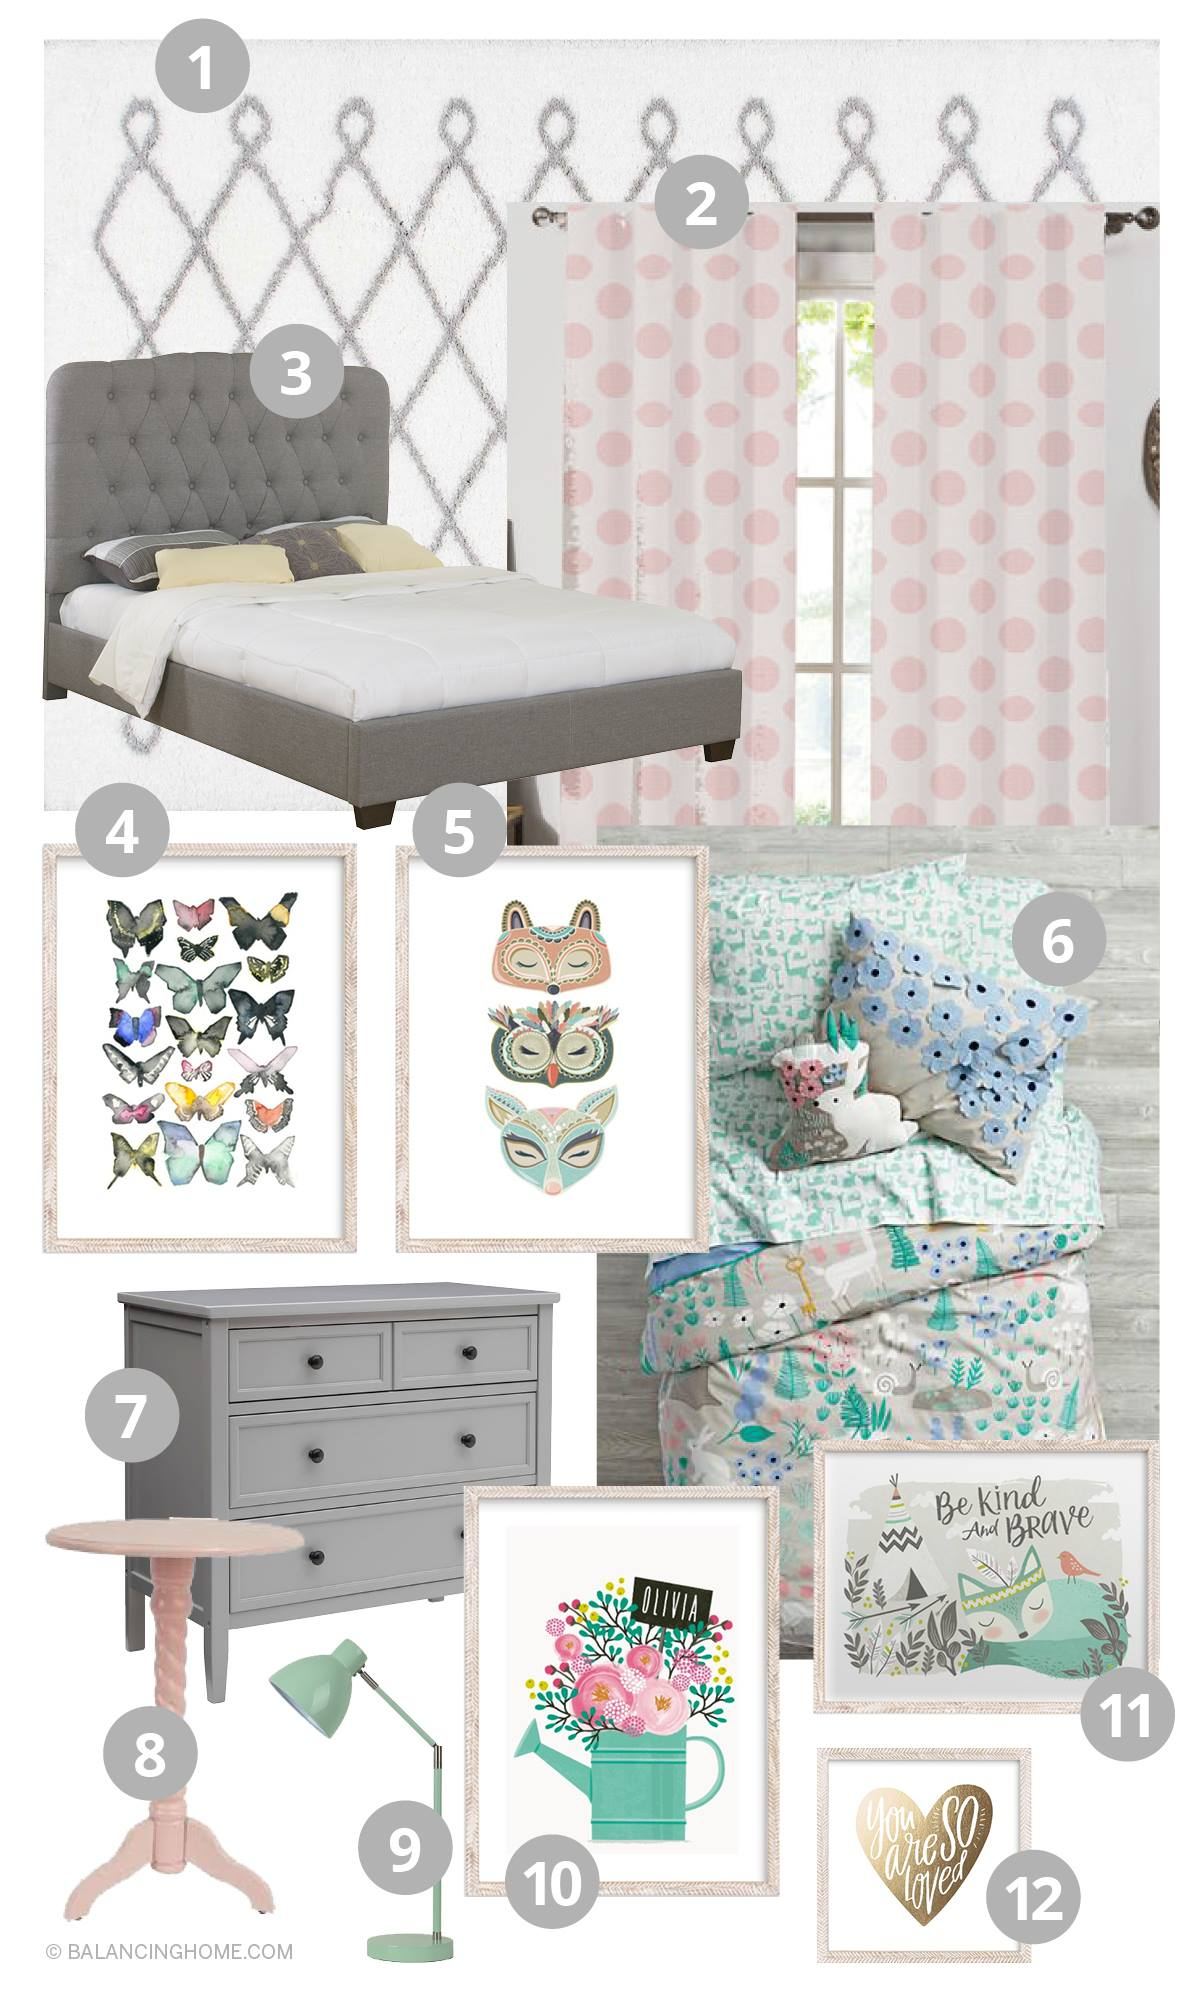 Small Bedroom Decor & Bedroom Decorating Ideas: Chic girl bedroom mood board in gray, pink, and mint